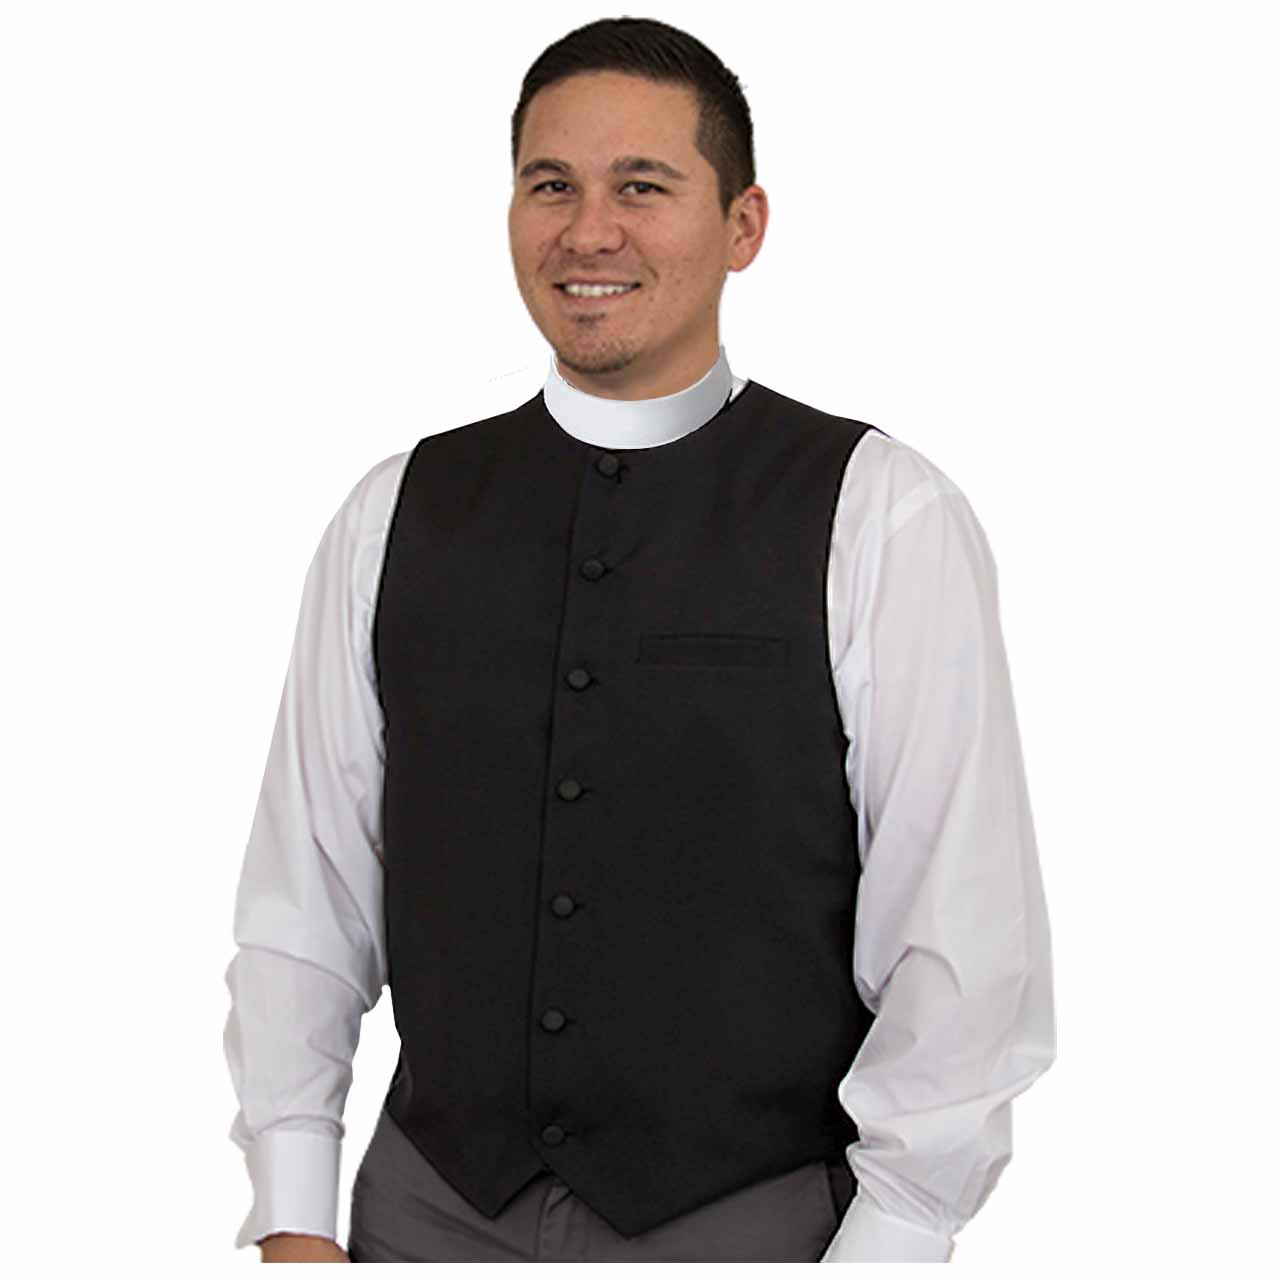 H-117 Collarless Clergy Vest from Murphy Robes